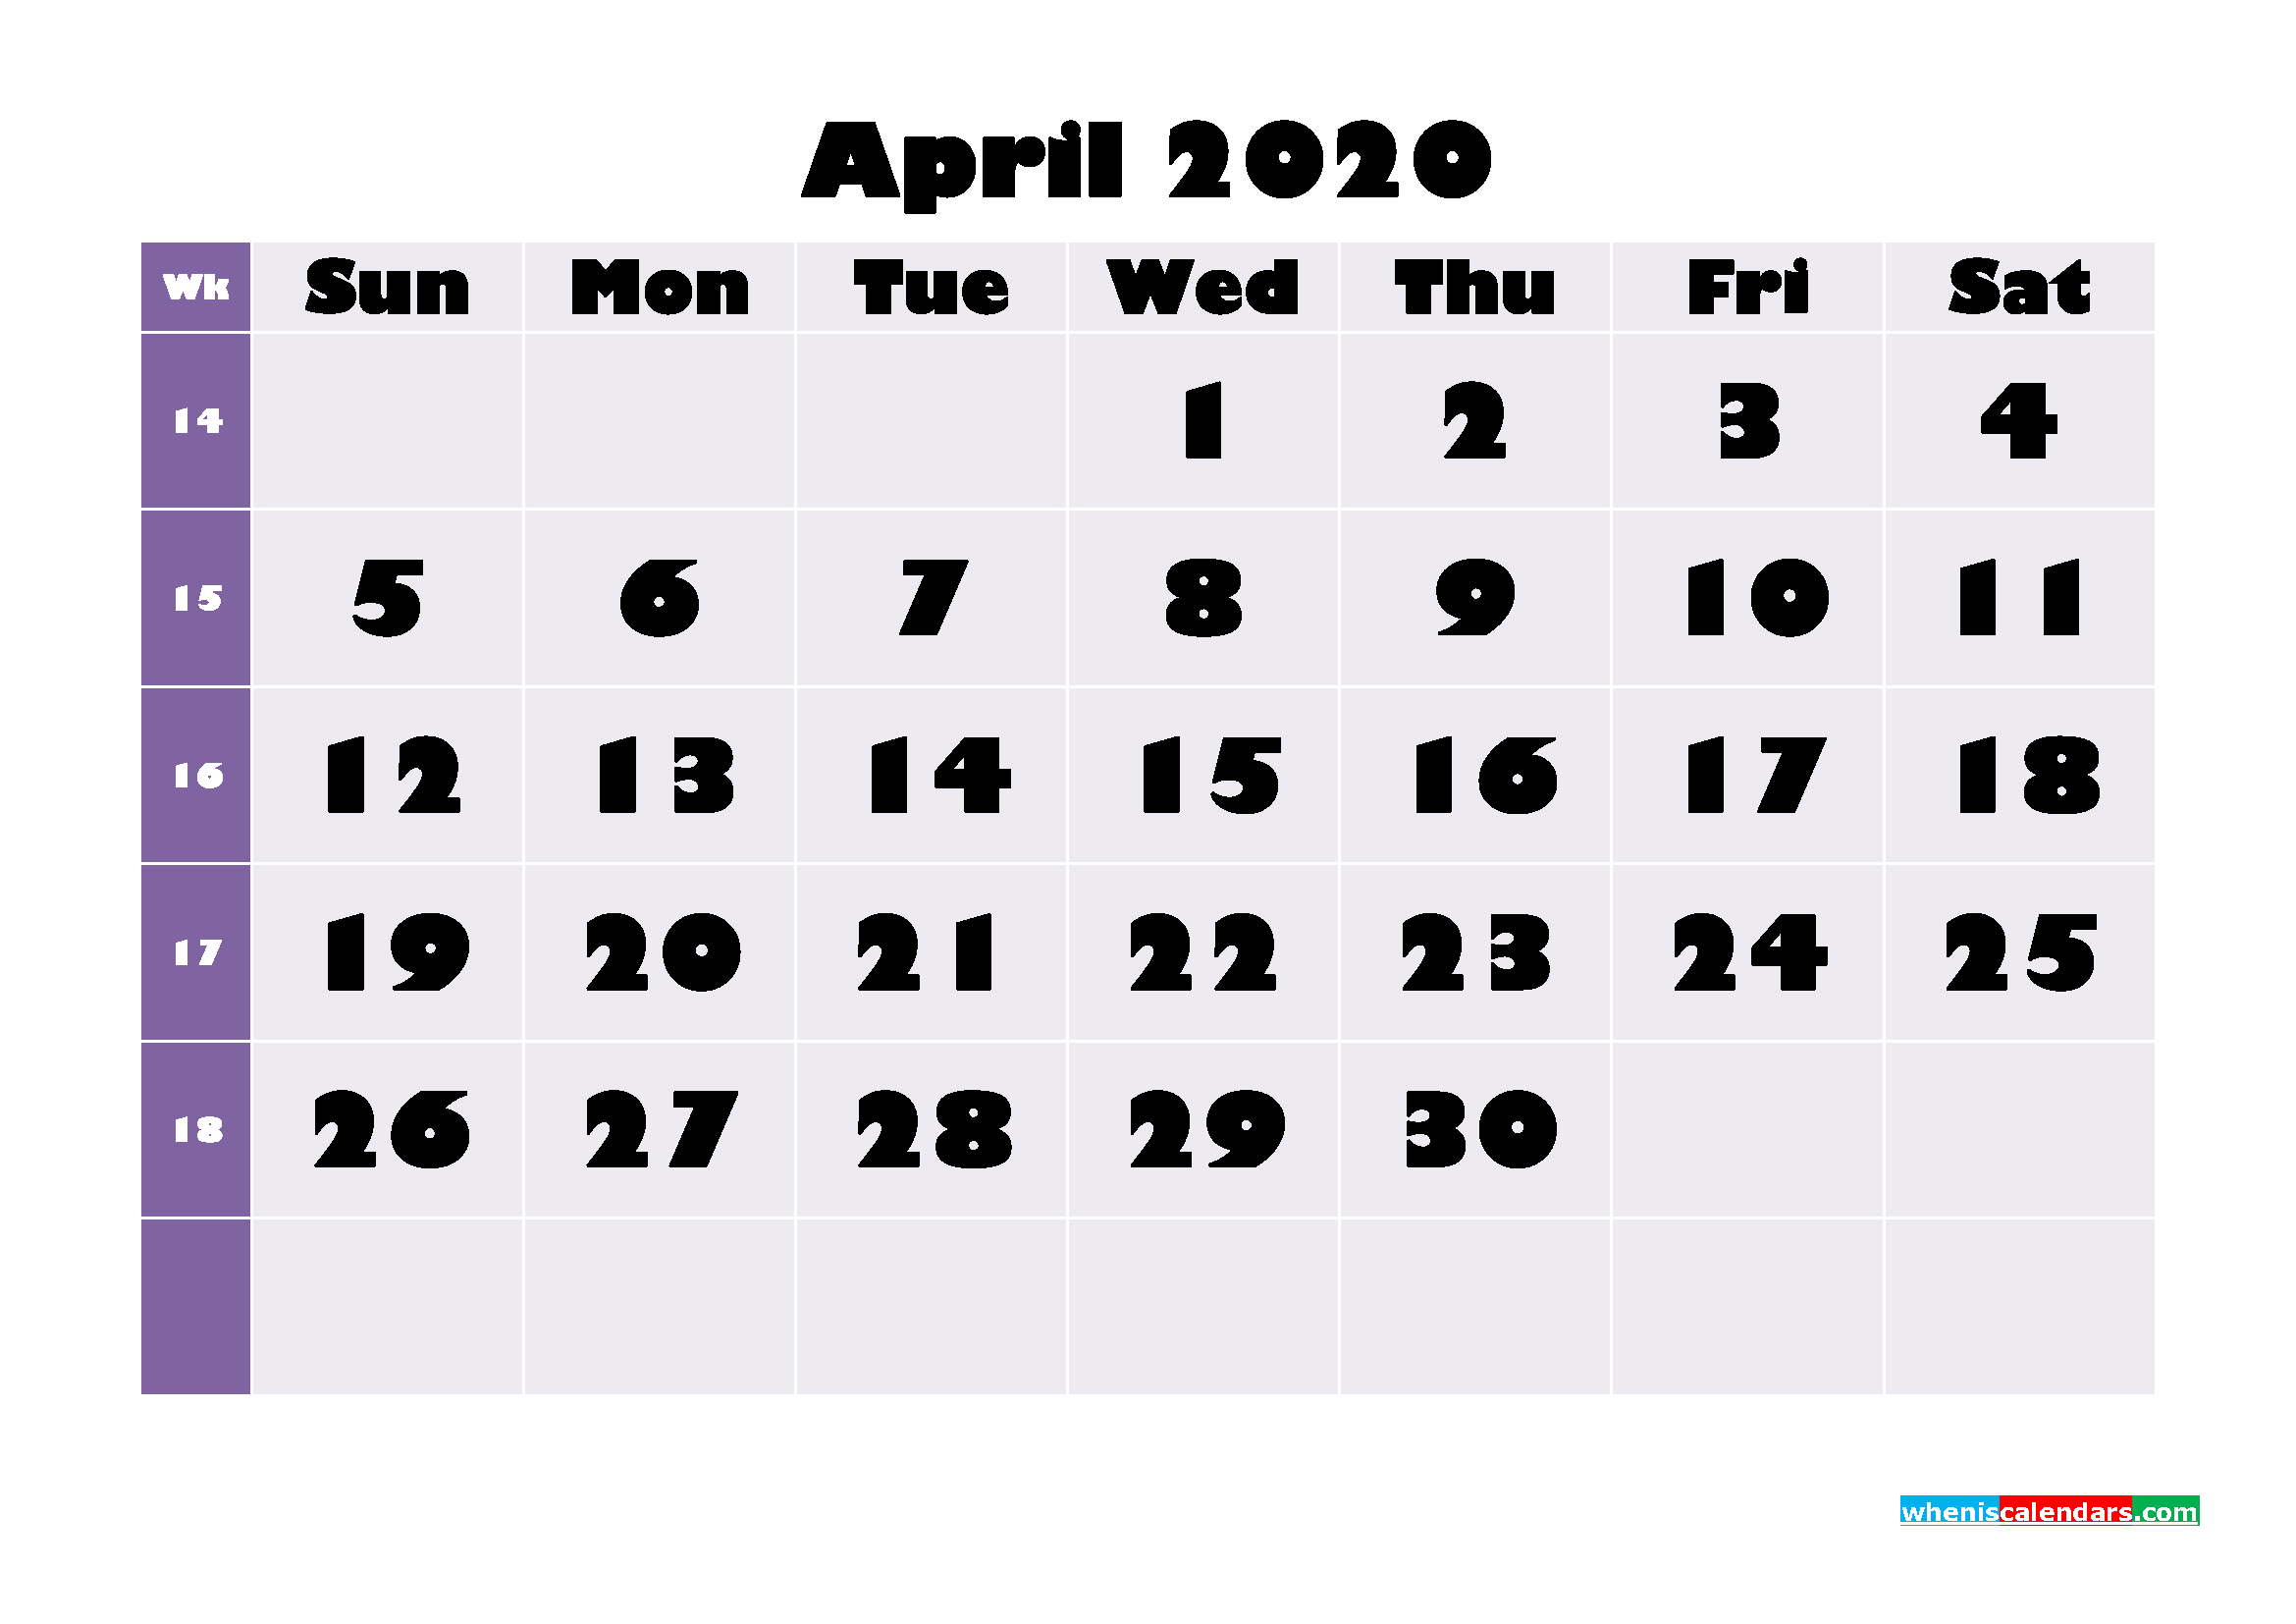 Printable Monthly Calendar 2020 April with Week Numbers